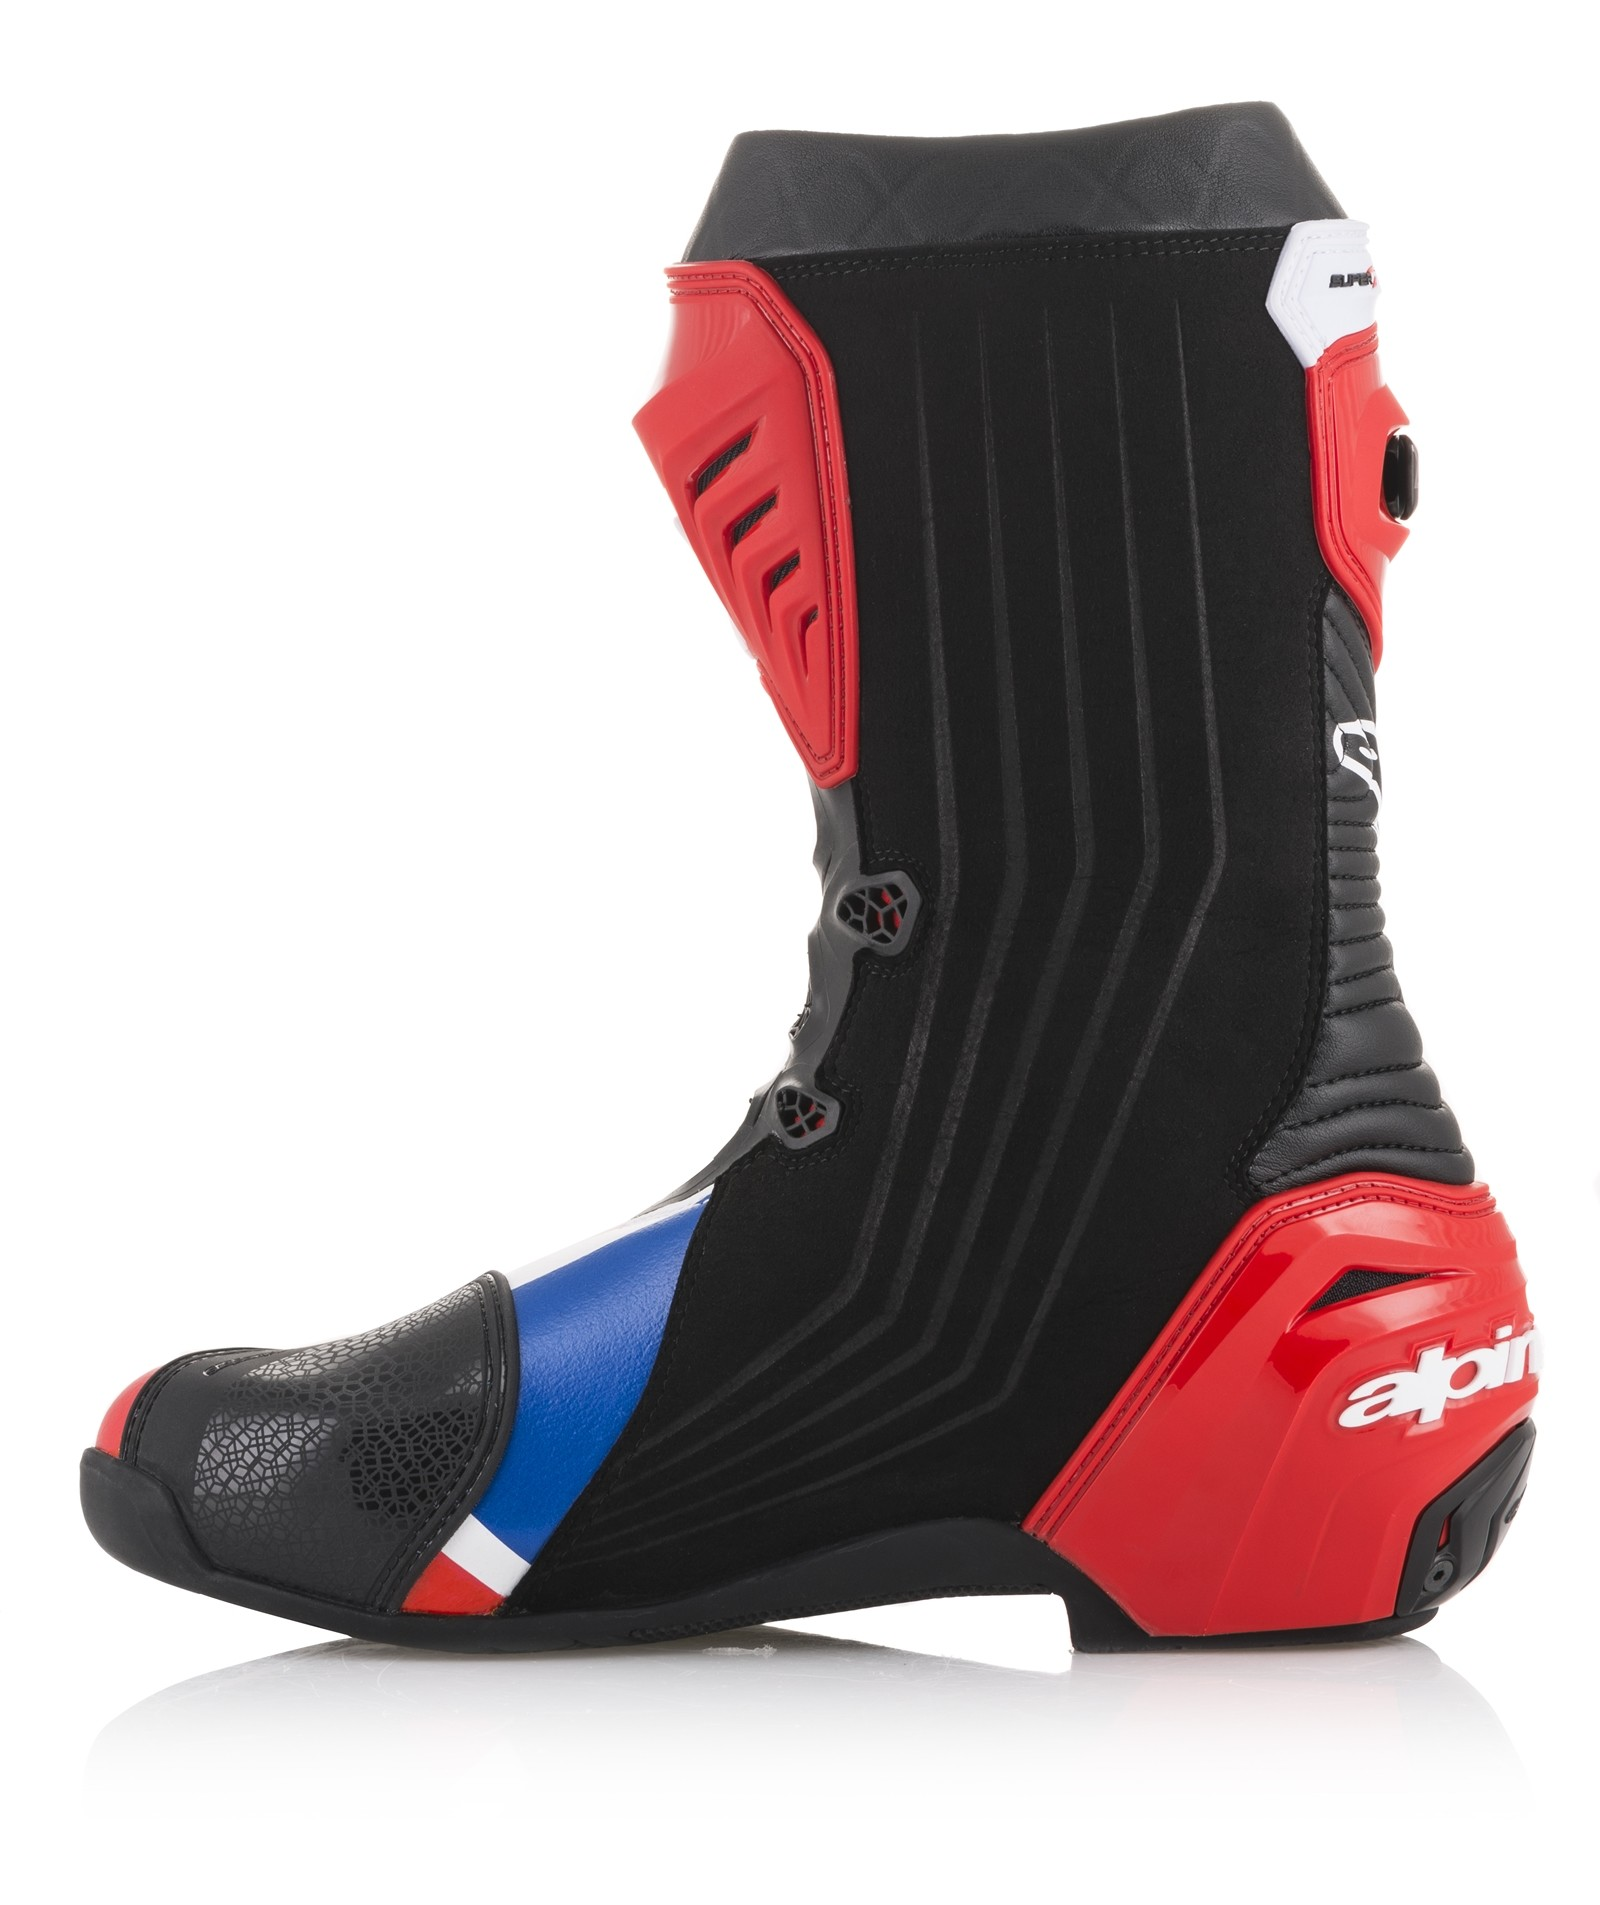 Alpinestars John McGuinness Limited Edition Supertech R 2018